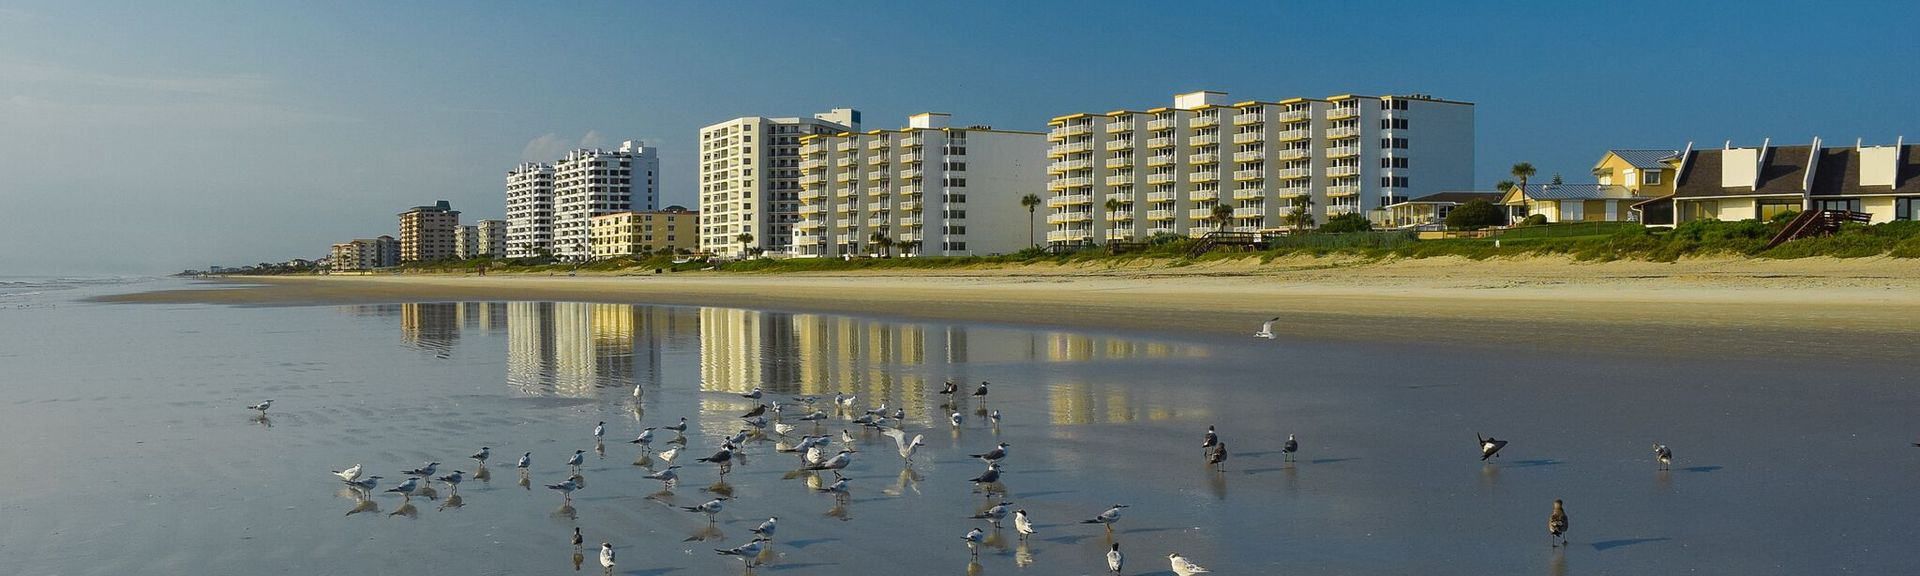 New Smyrna Beach, FL, USA